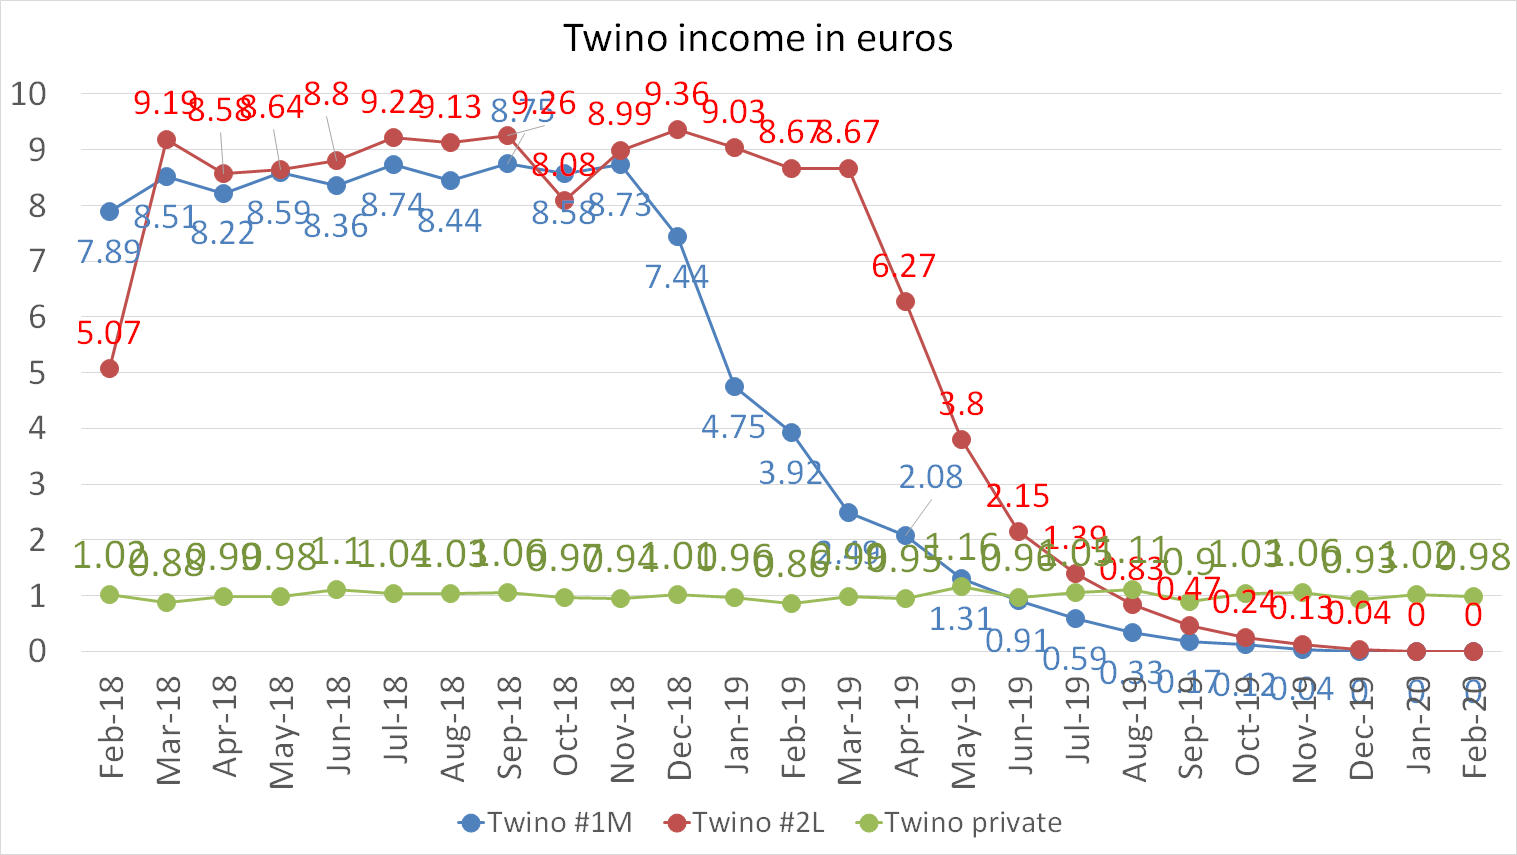 Twino income in euros february 2020